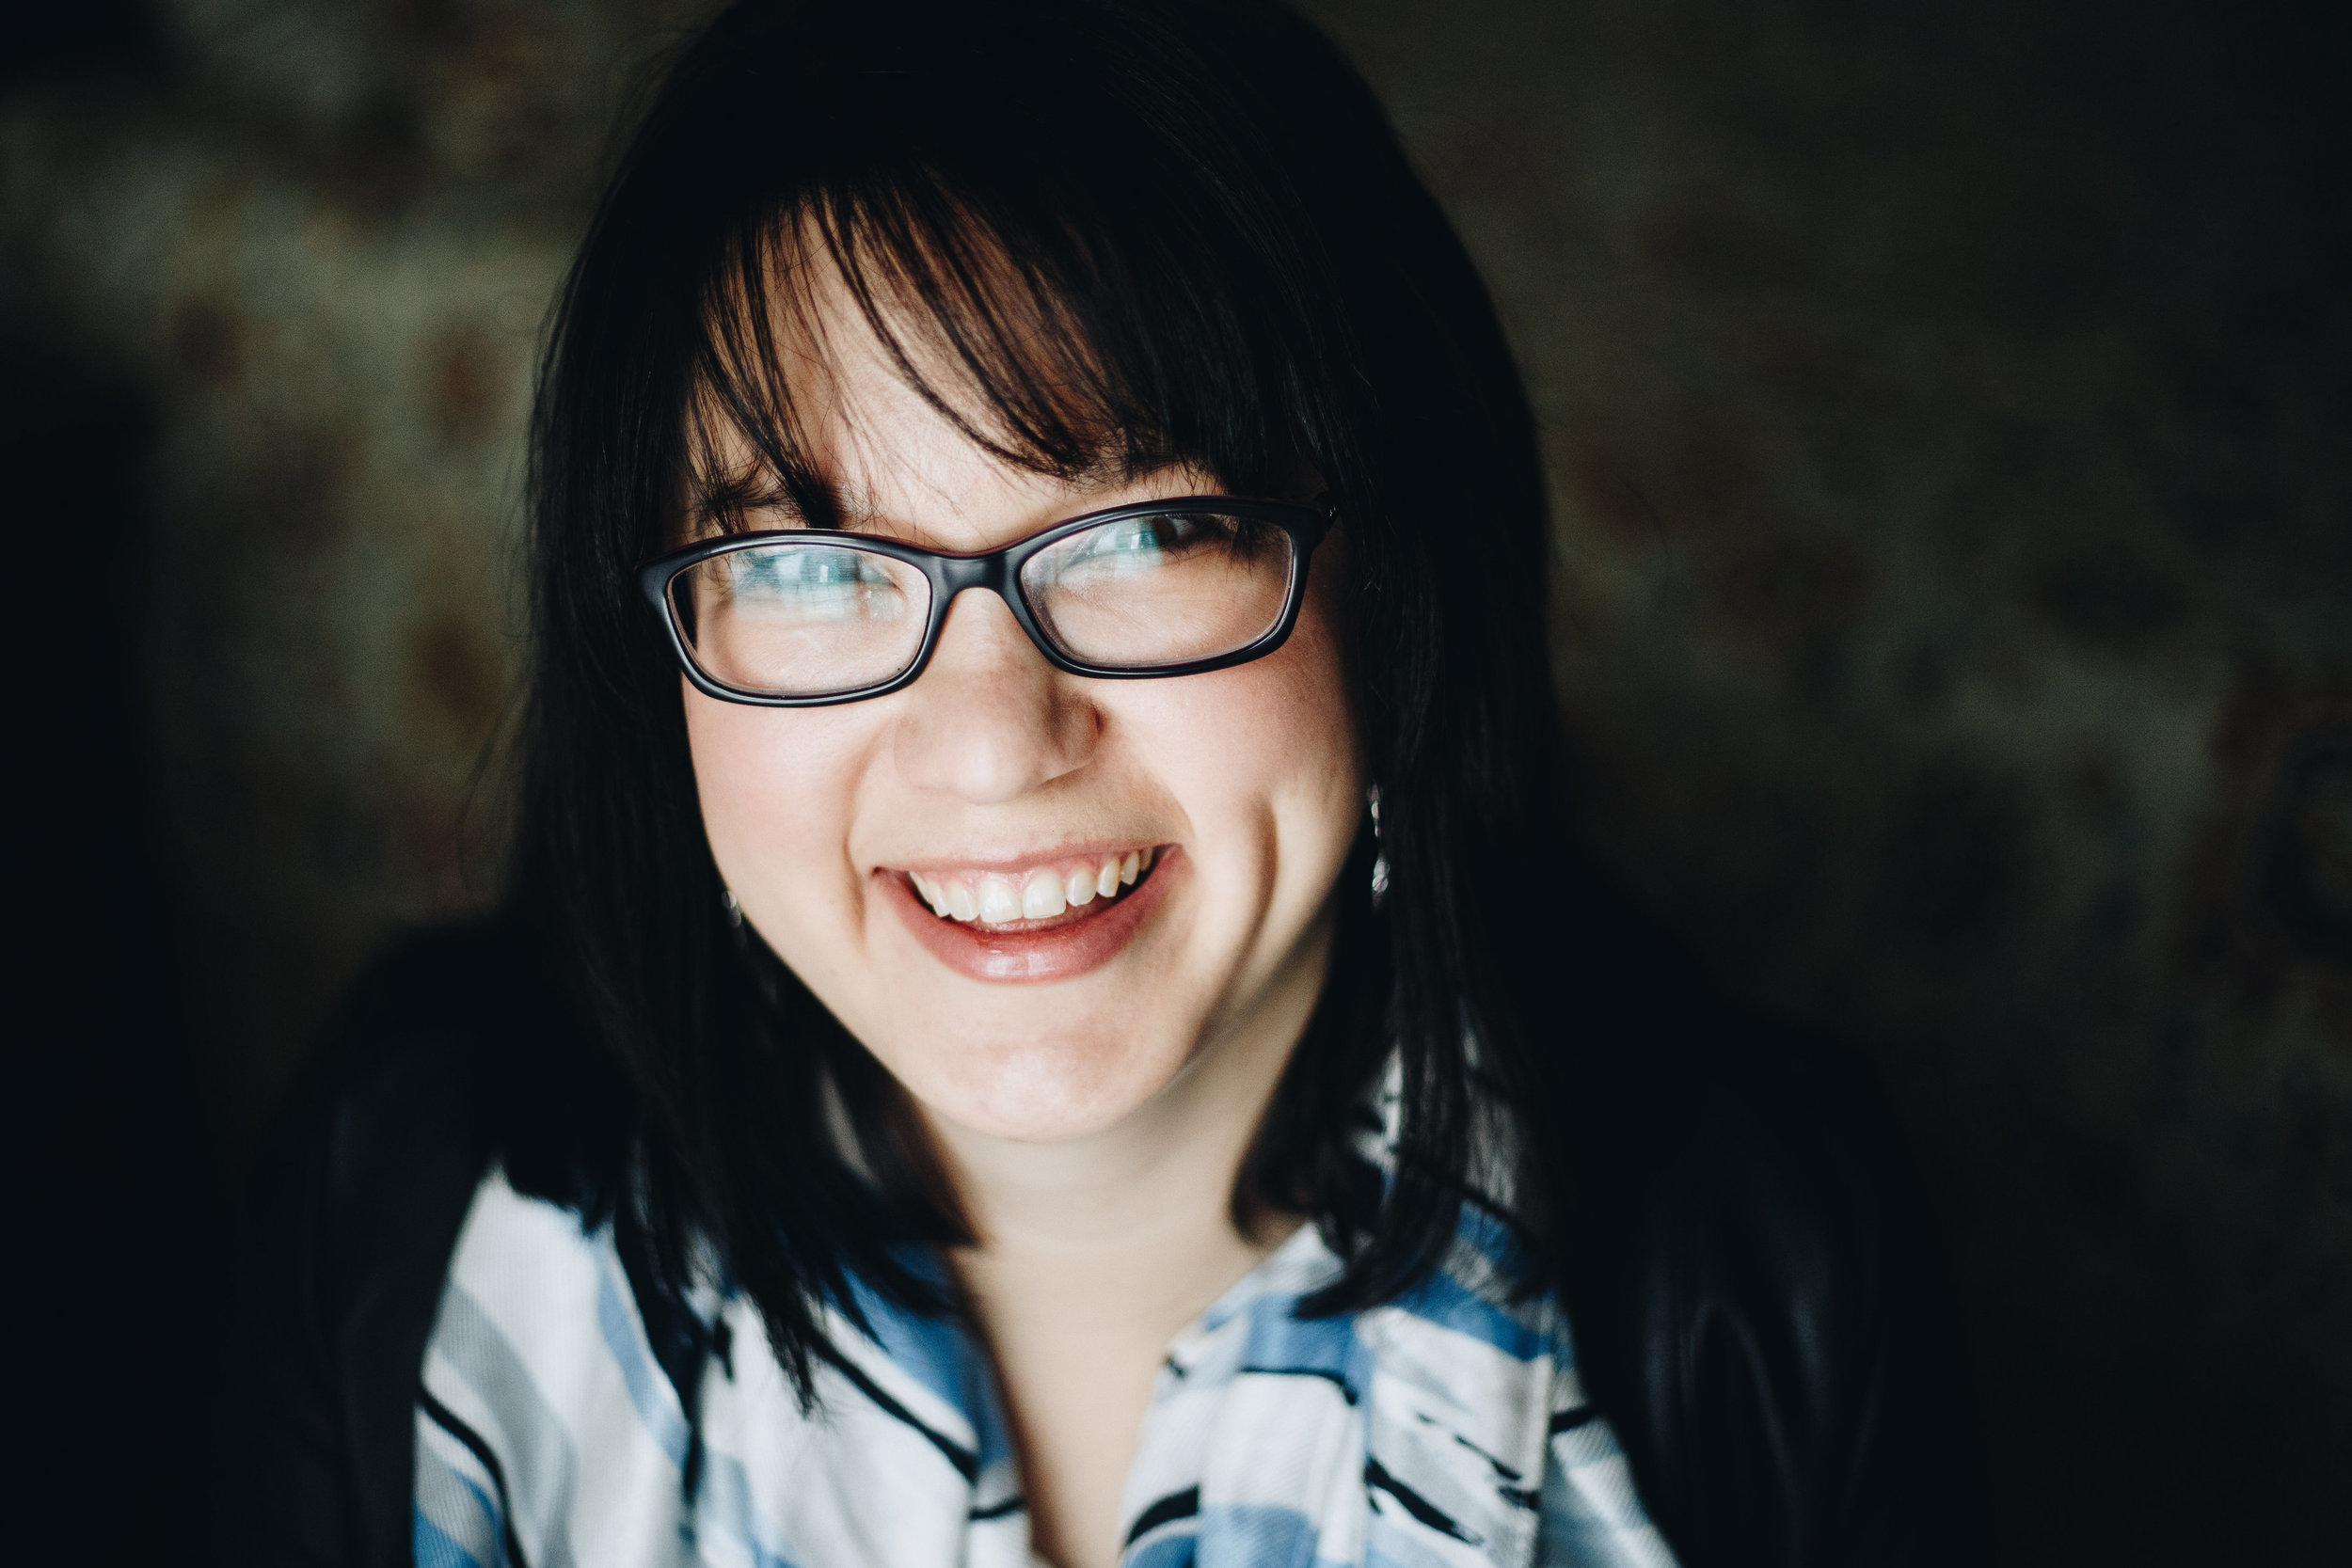 Jennifer Holmes -God, Elijah, and I - I would love to walk you through what I've learned about God walking through my bipolar journey and studying the story of Elijah